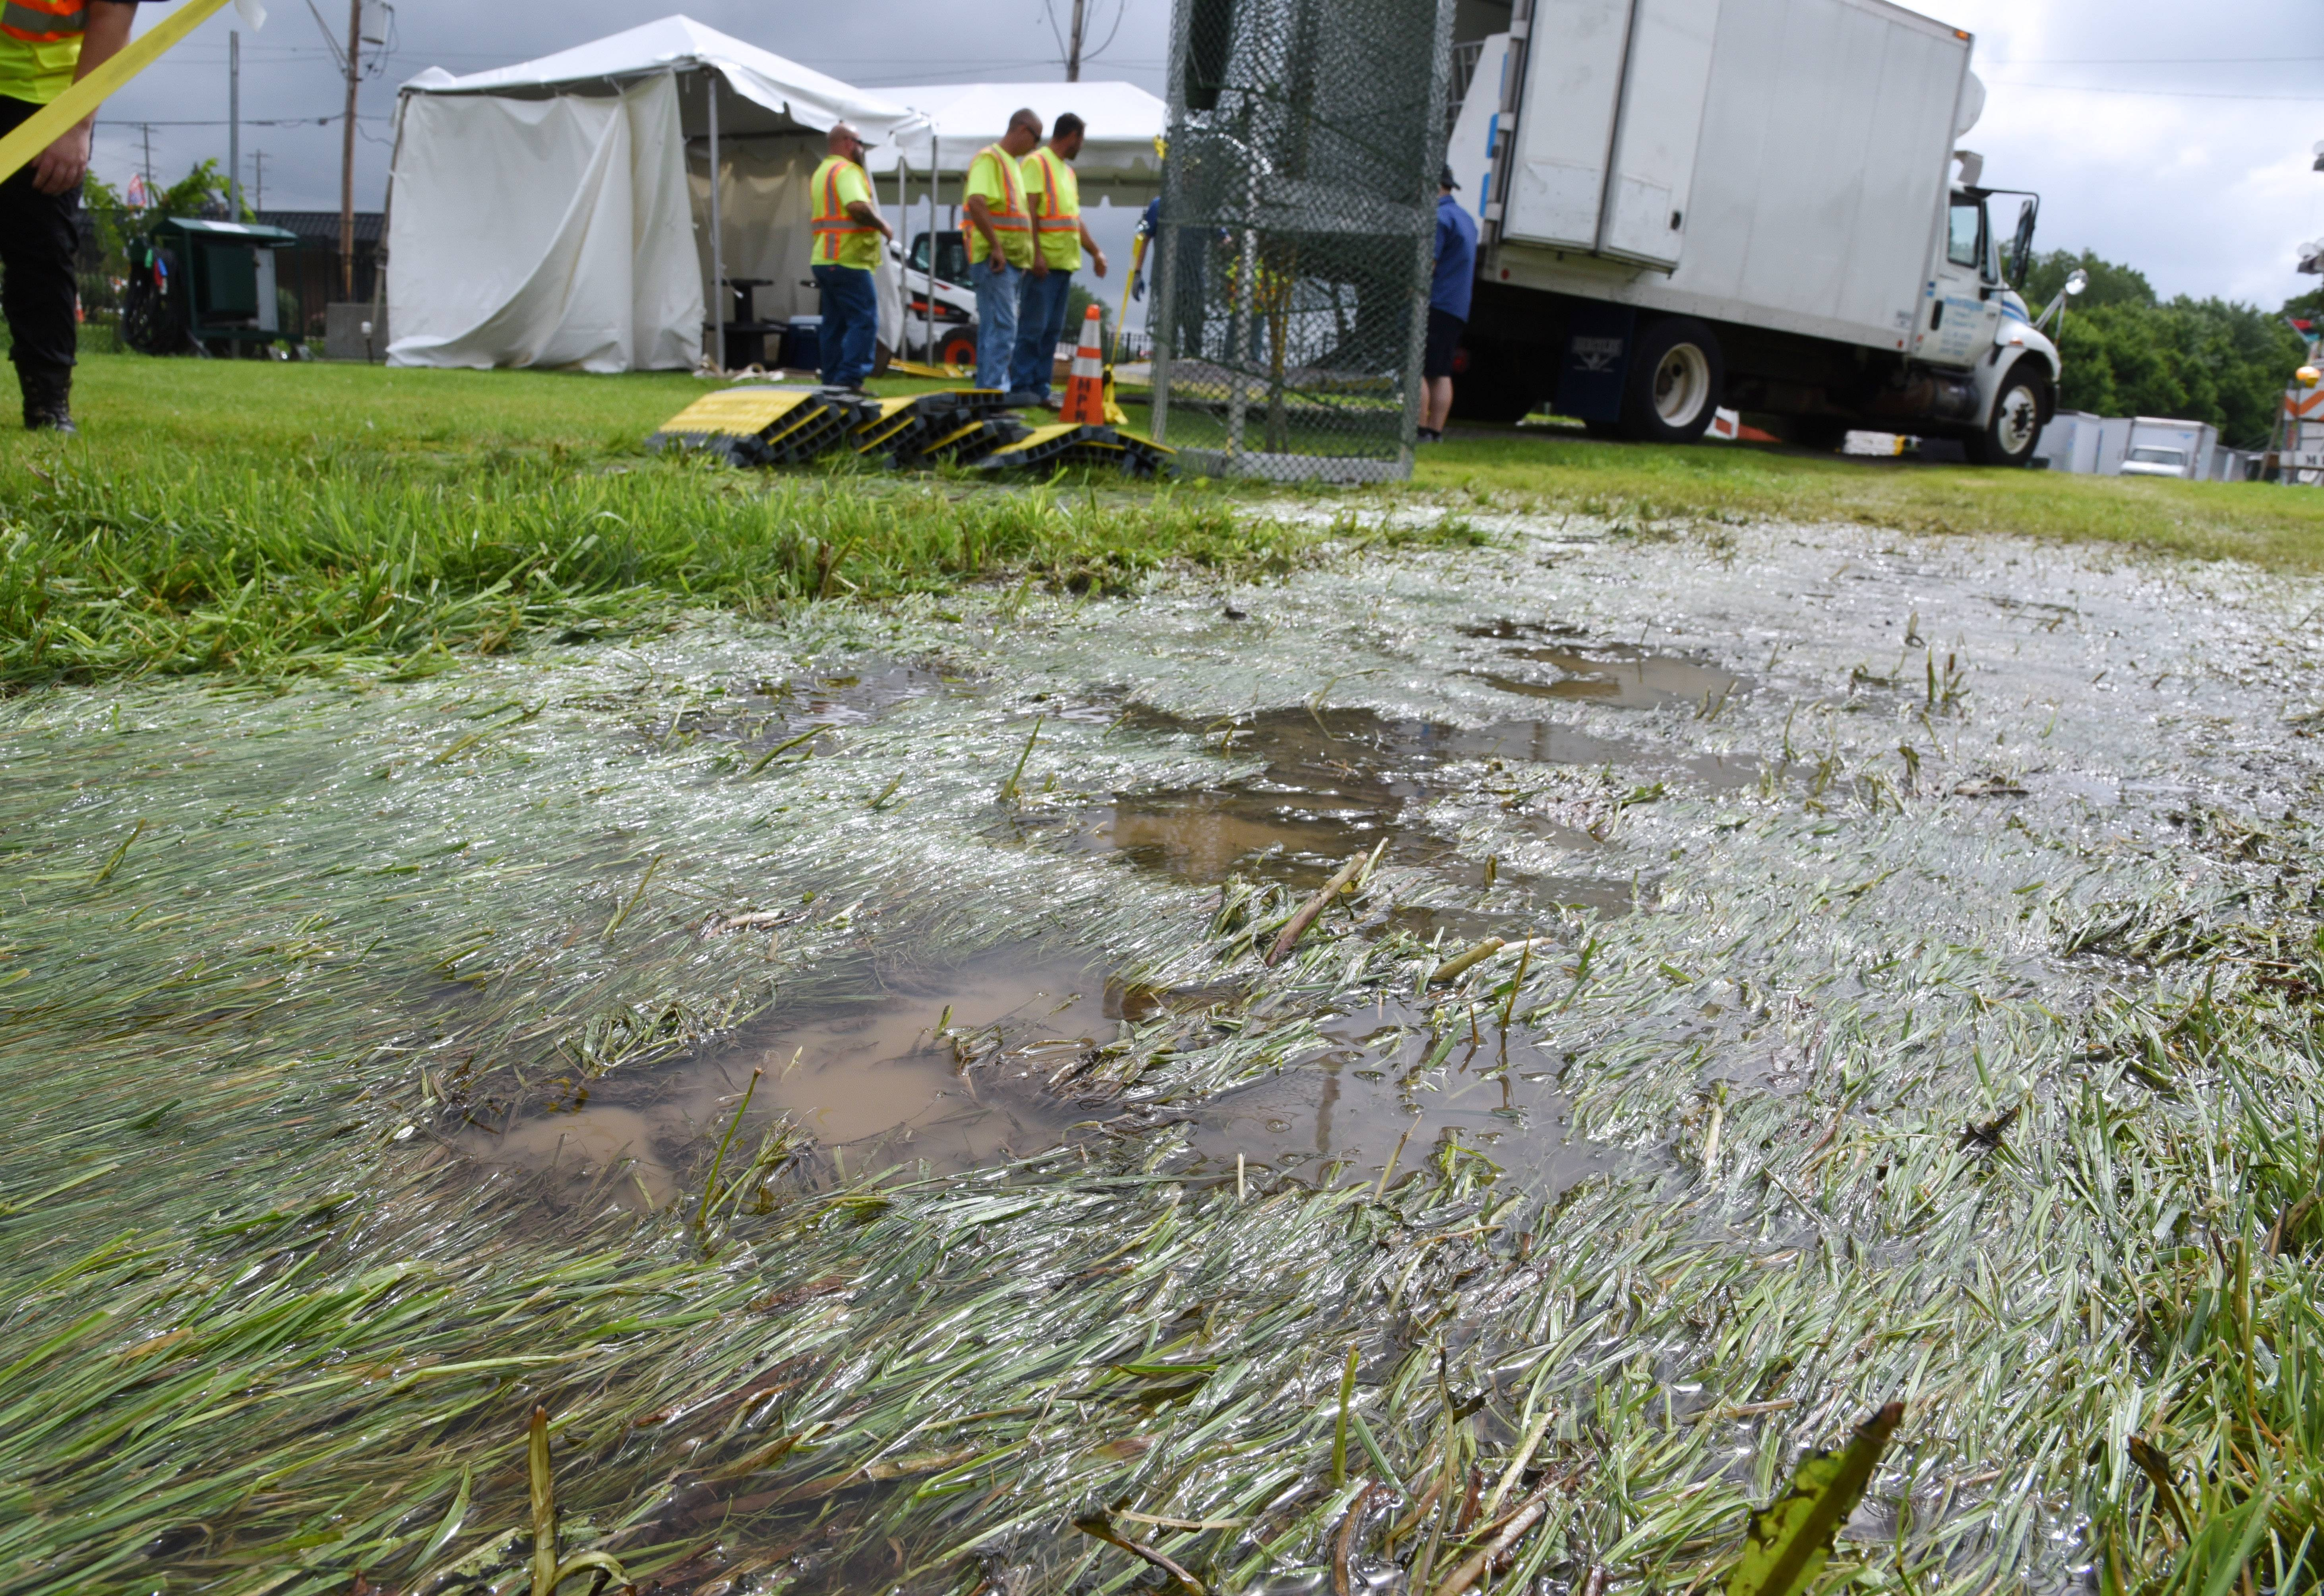 Overnight rain left the grounds of the Mundelein Community Days along Seymour Avenue a bit soggy as crews set up Wednesday morning. Crews did see signs of it already drying up in time for Thursday's kickoff.